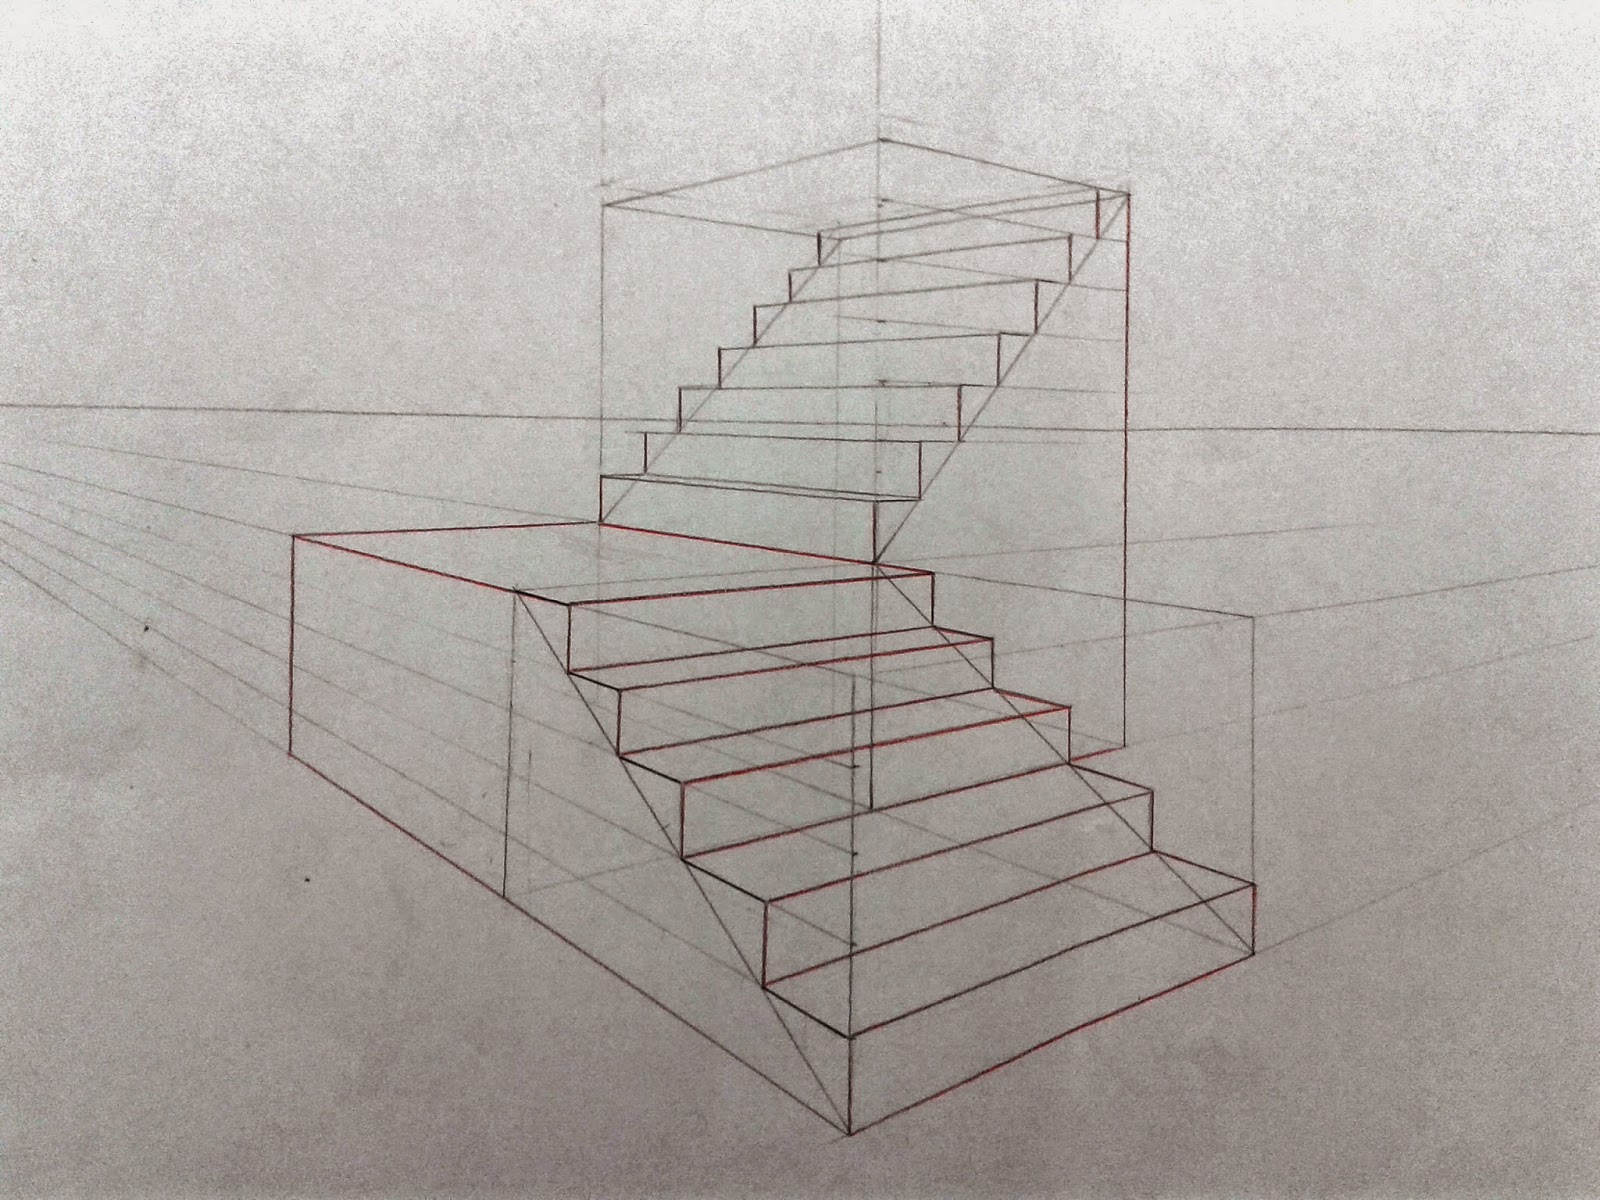 Perspective D Un Escalier Images : Dessin illustration strip escalier en perspective